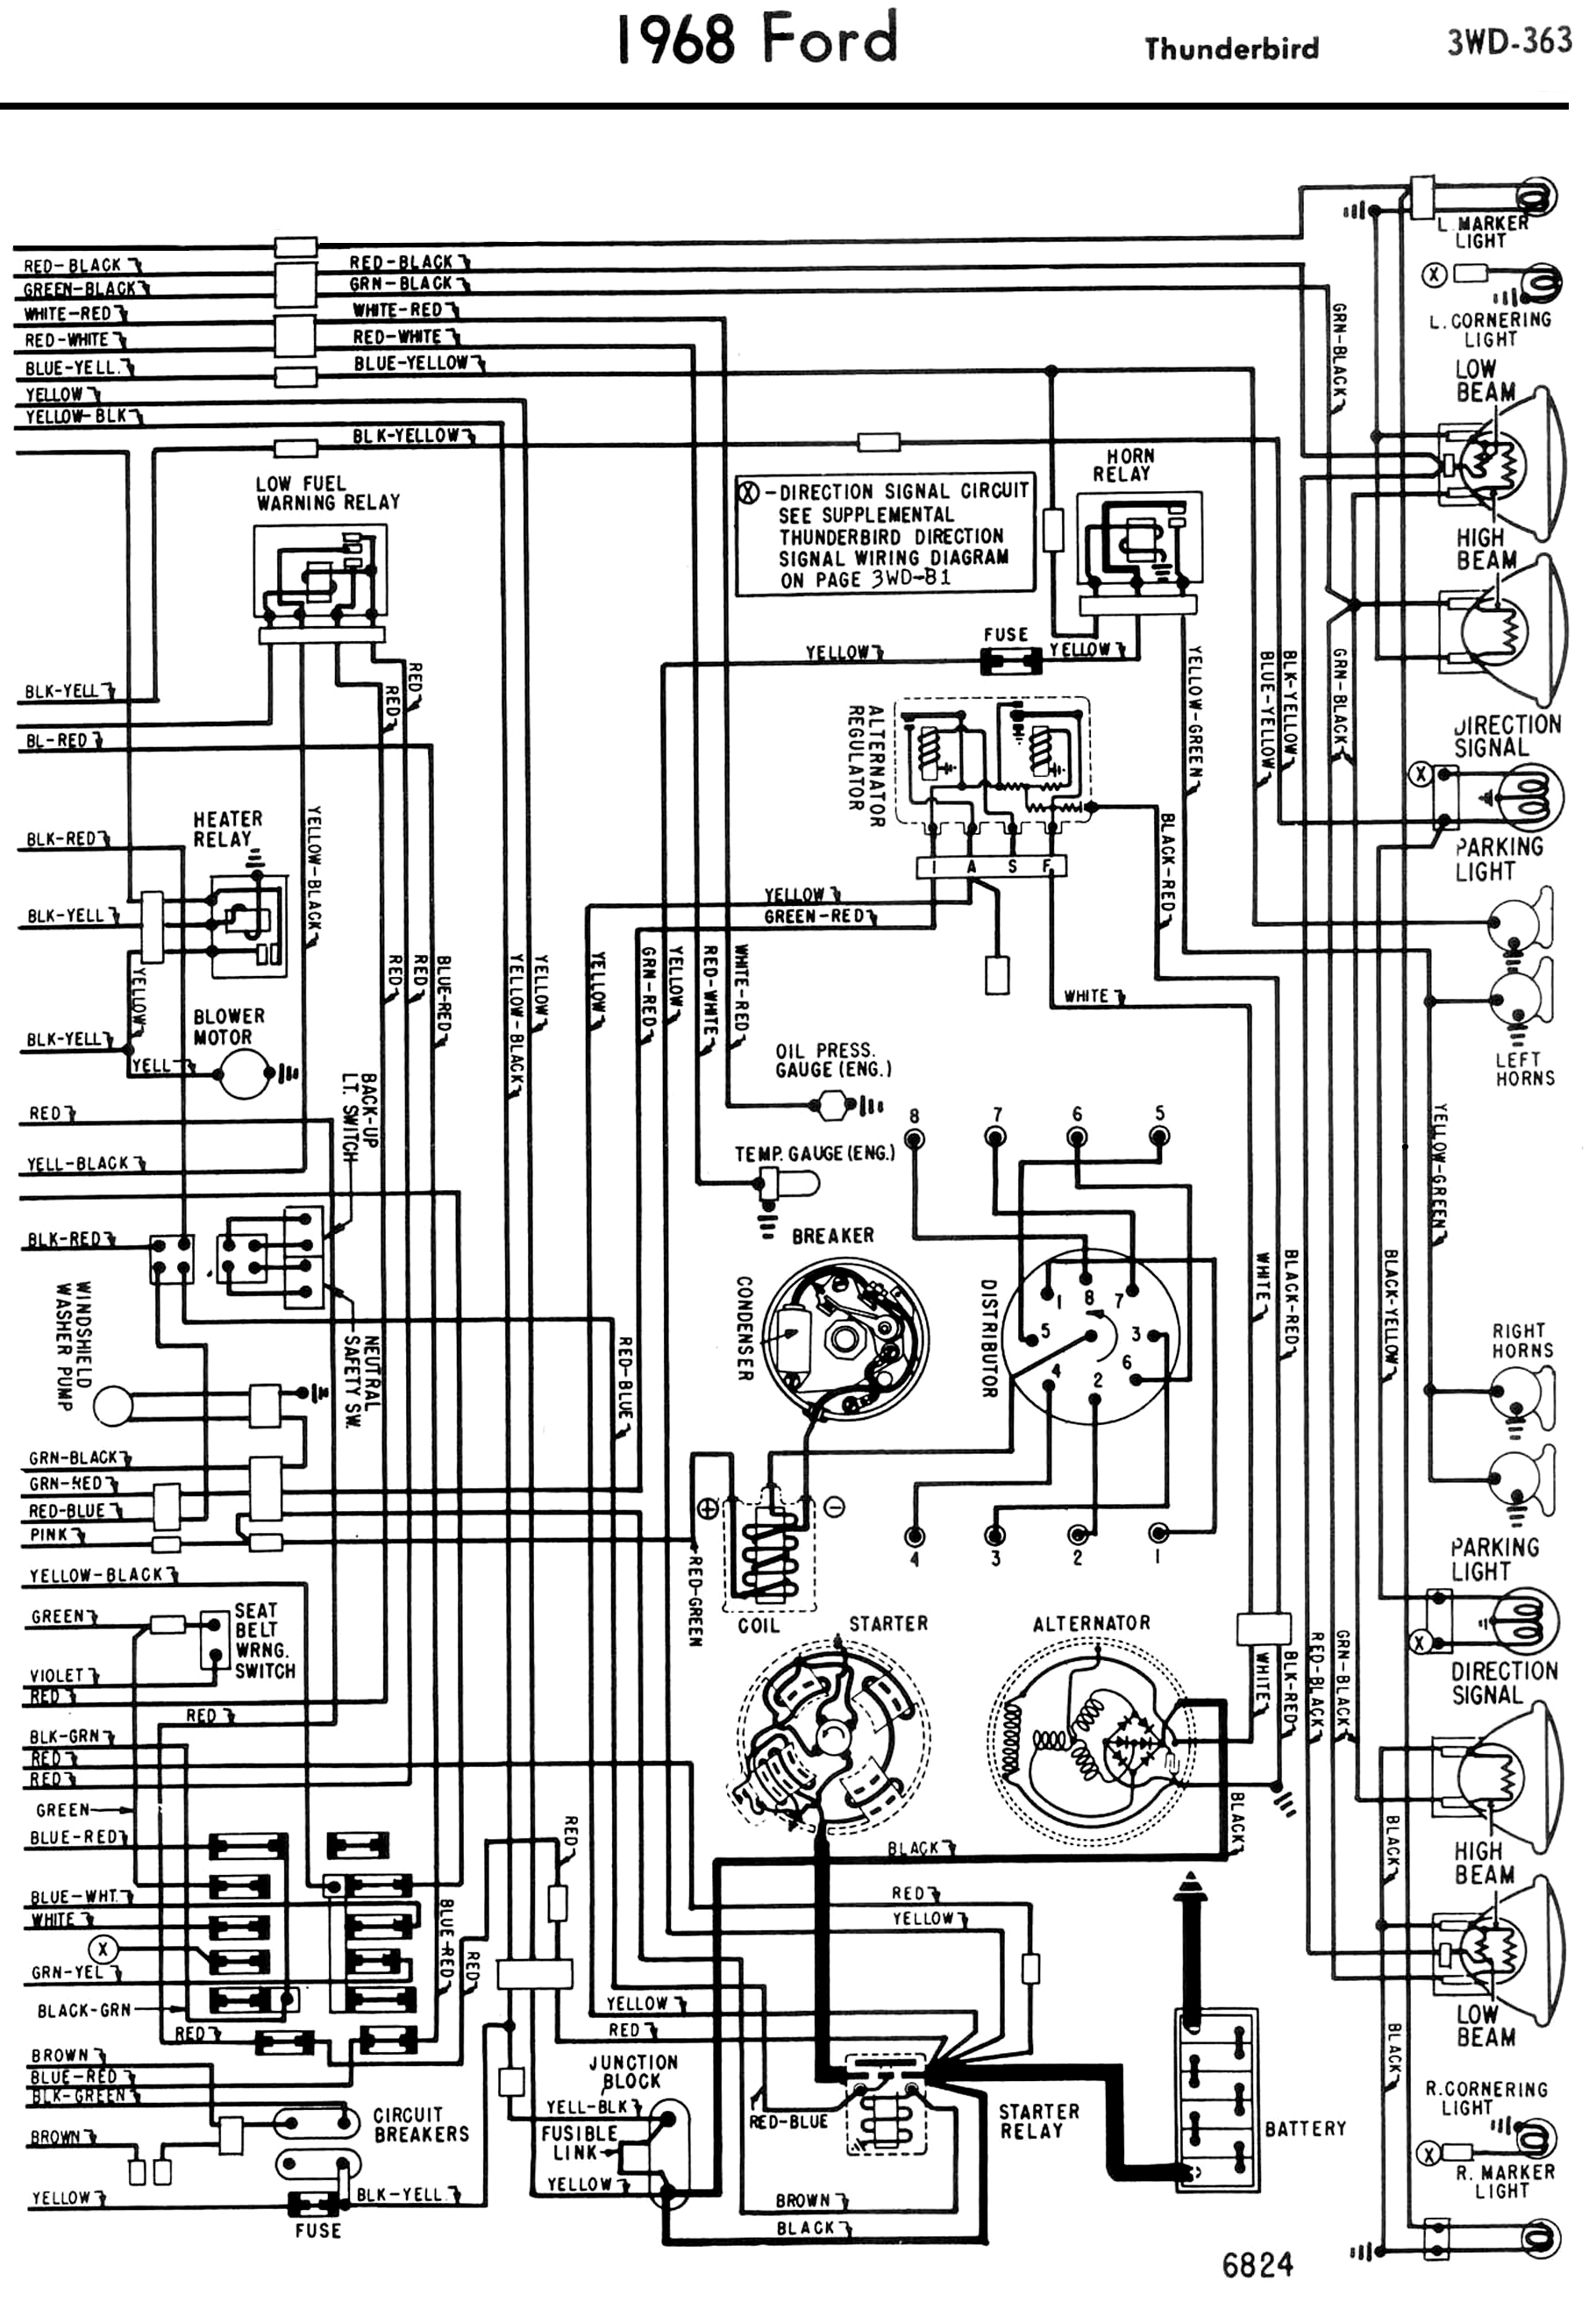 1958 68 ford electrical schematics rh squarebirds org 1967 thunderbird wiring diagram 1967 thunderbird wiring diagram